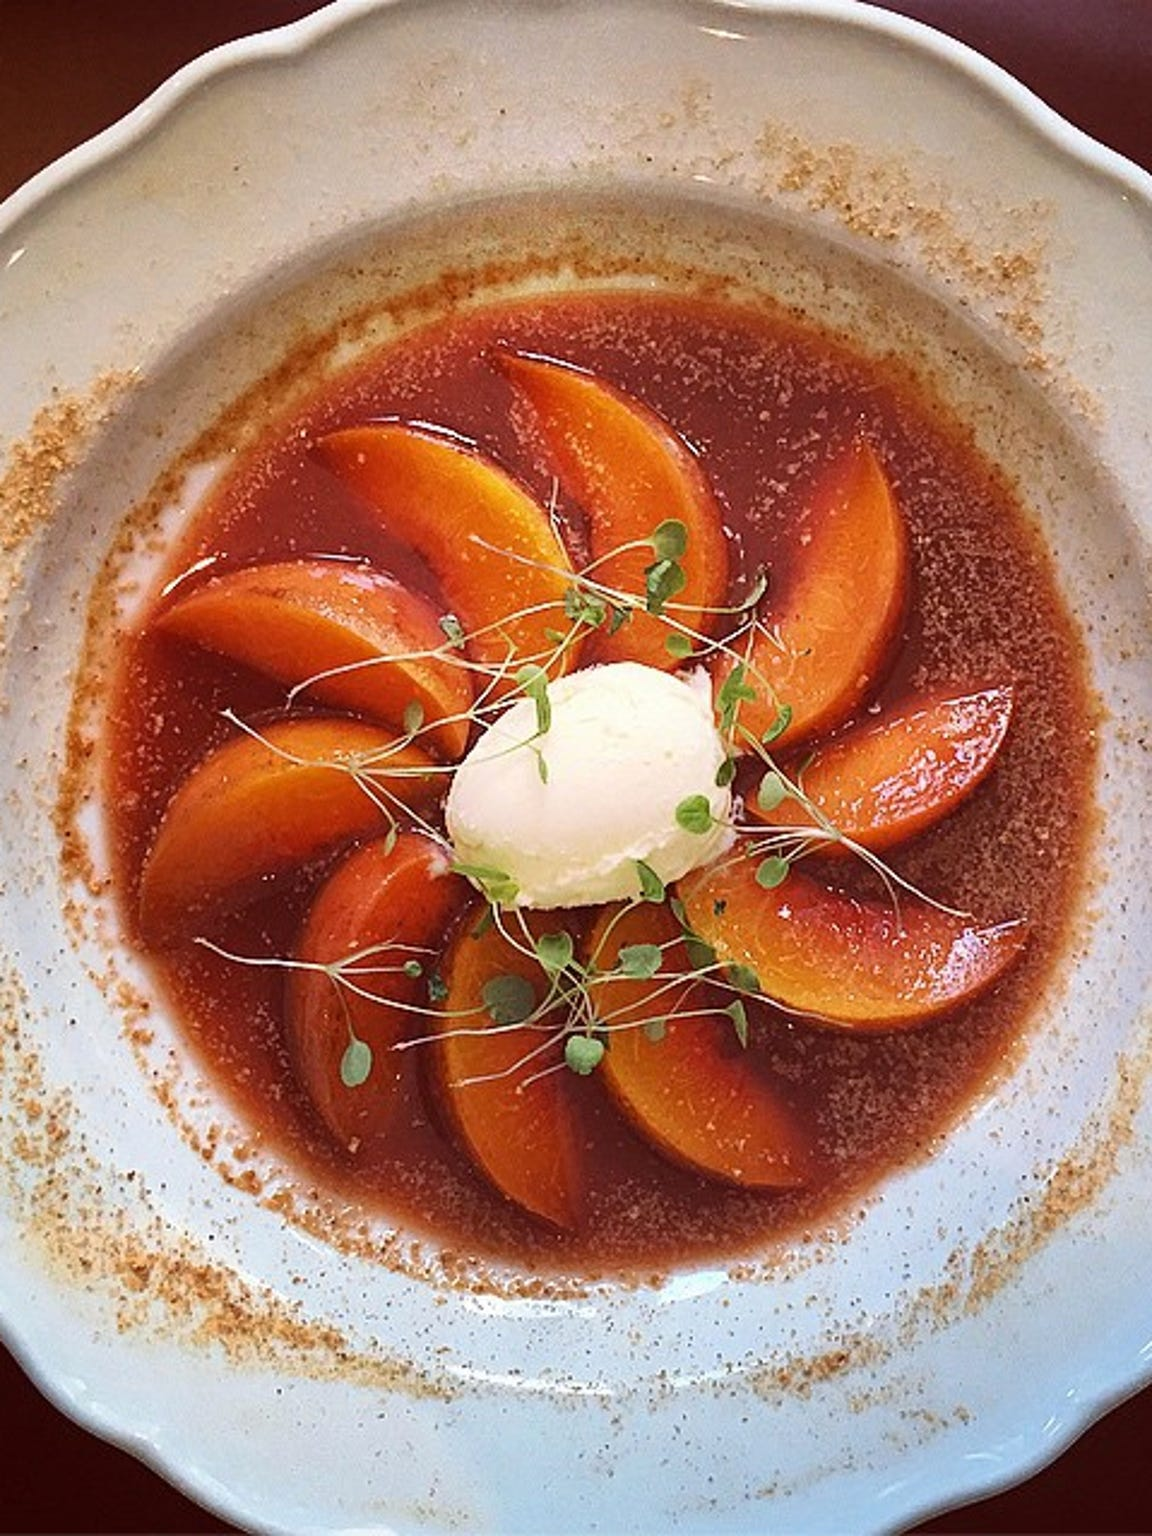 Peaches in blood orange sauce at Le Sirene, Larchmont.